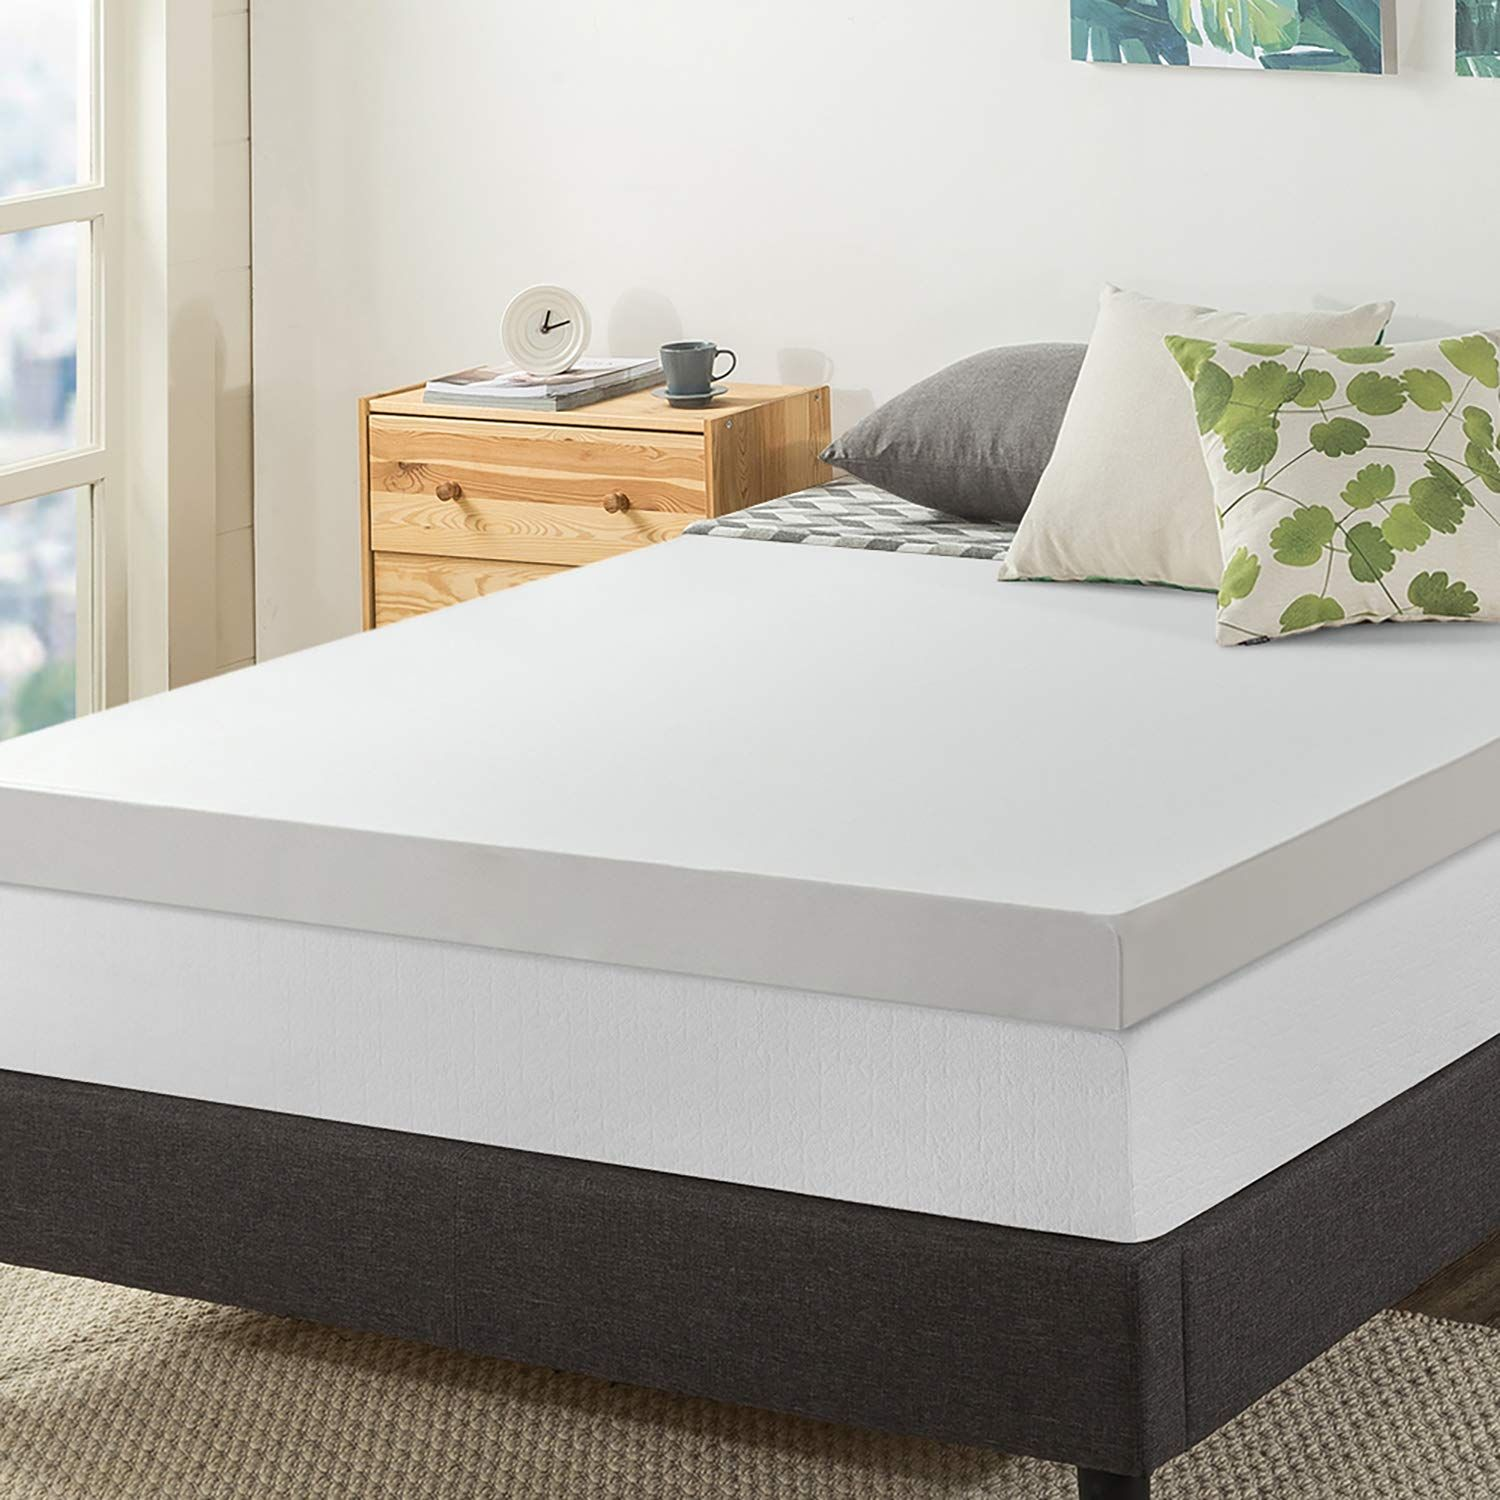 Best Price Mattress 4inch Memory Foam Mattress Topper Full